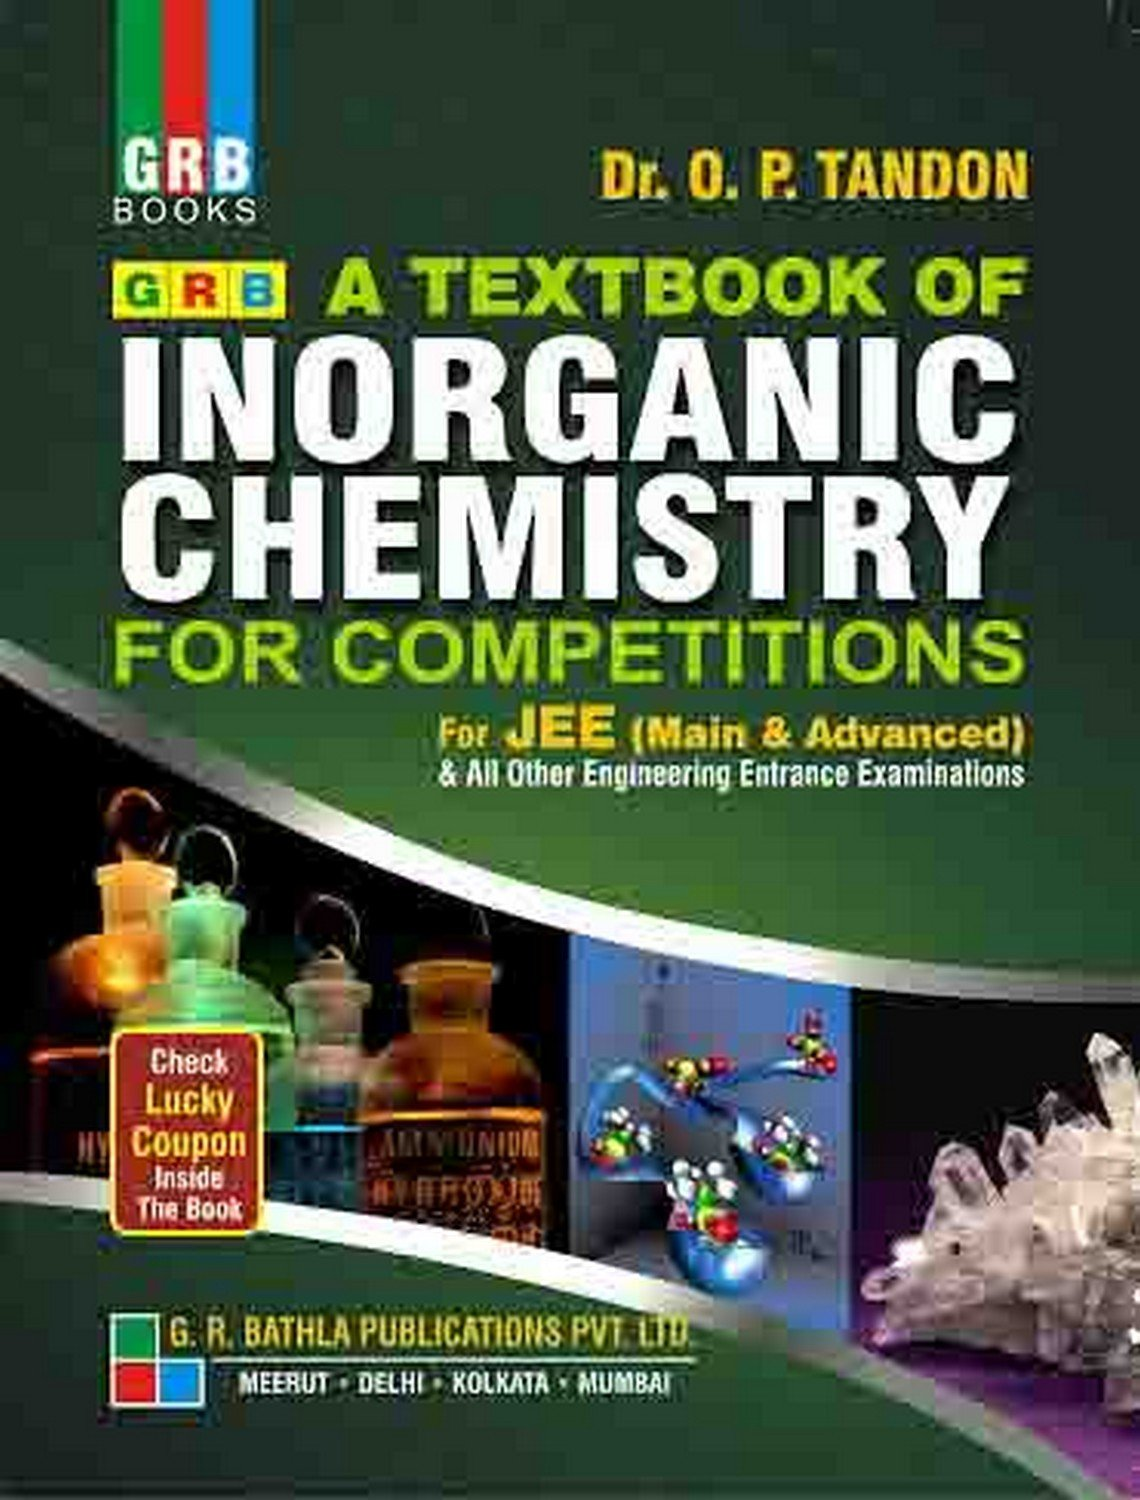 buy inorganic chemistry for competition for iit jee book online buy inorganic chemistry for competition for iit jee book online at low prices in inorganic chemistry for competition for iit jee reviews